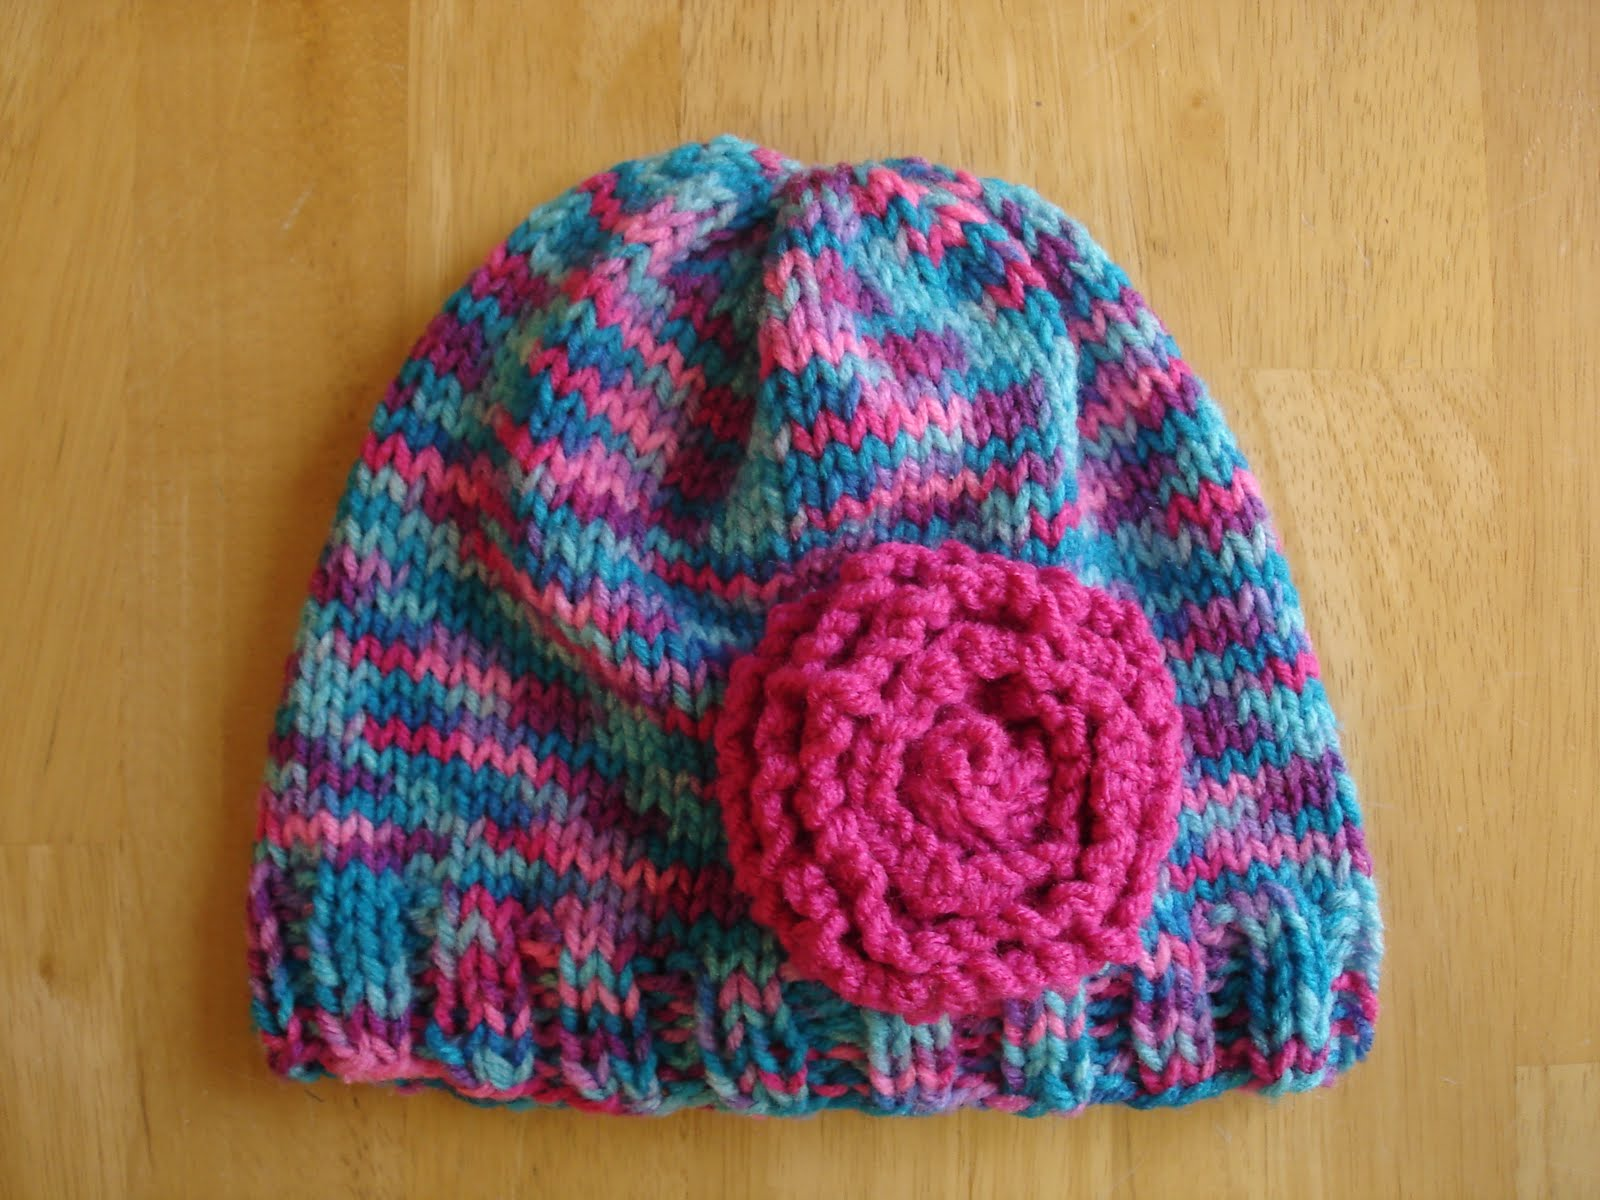 Free Knitting Pattern For Doll Hat : Fiber Flux: Free Knitting Pattern...Baby Doll Hats!